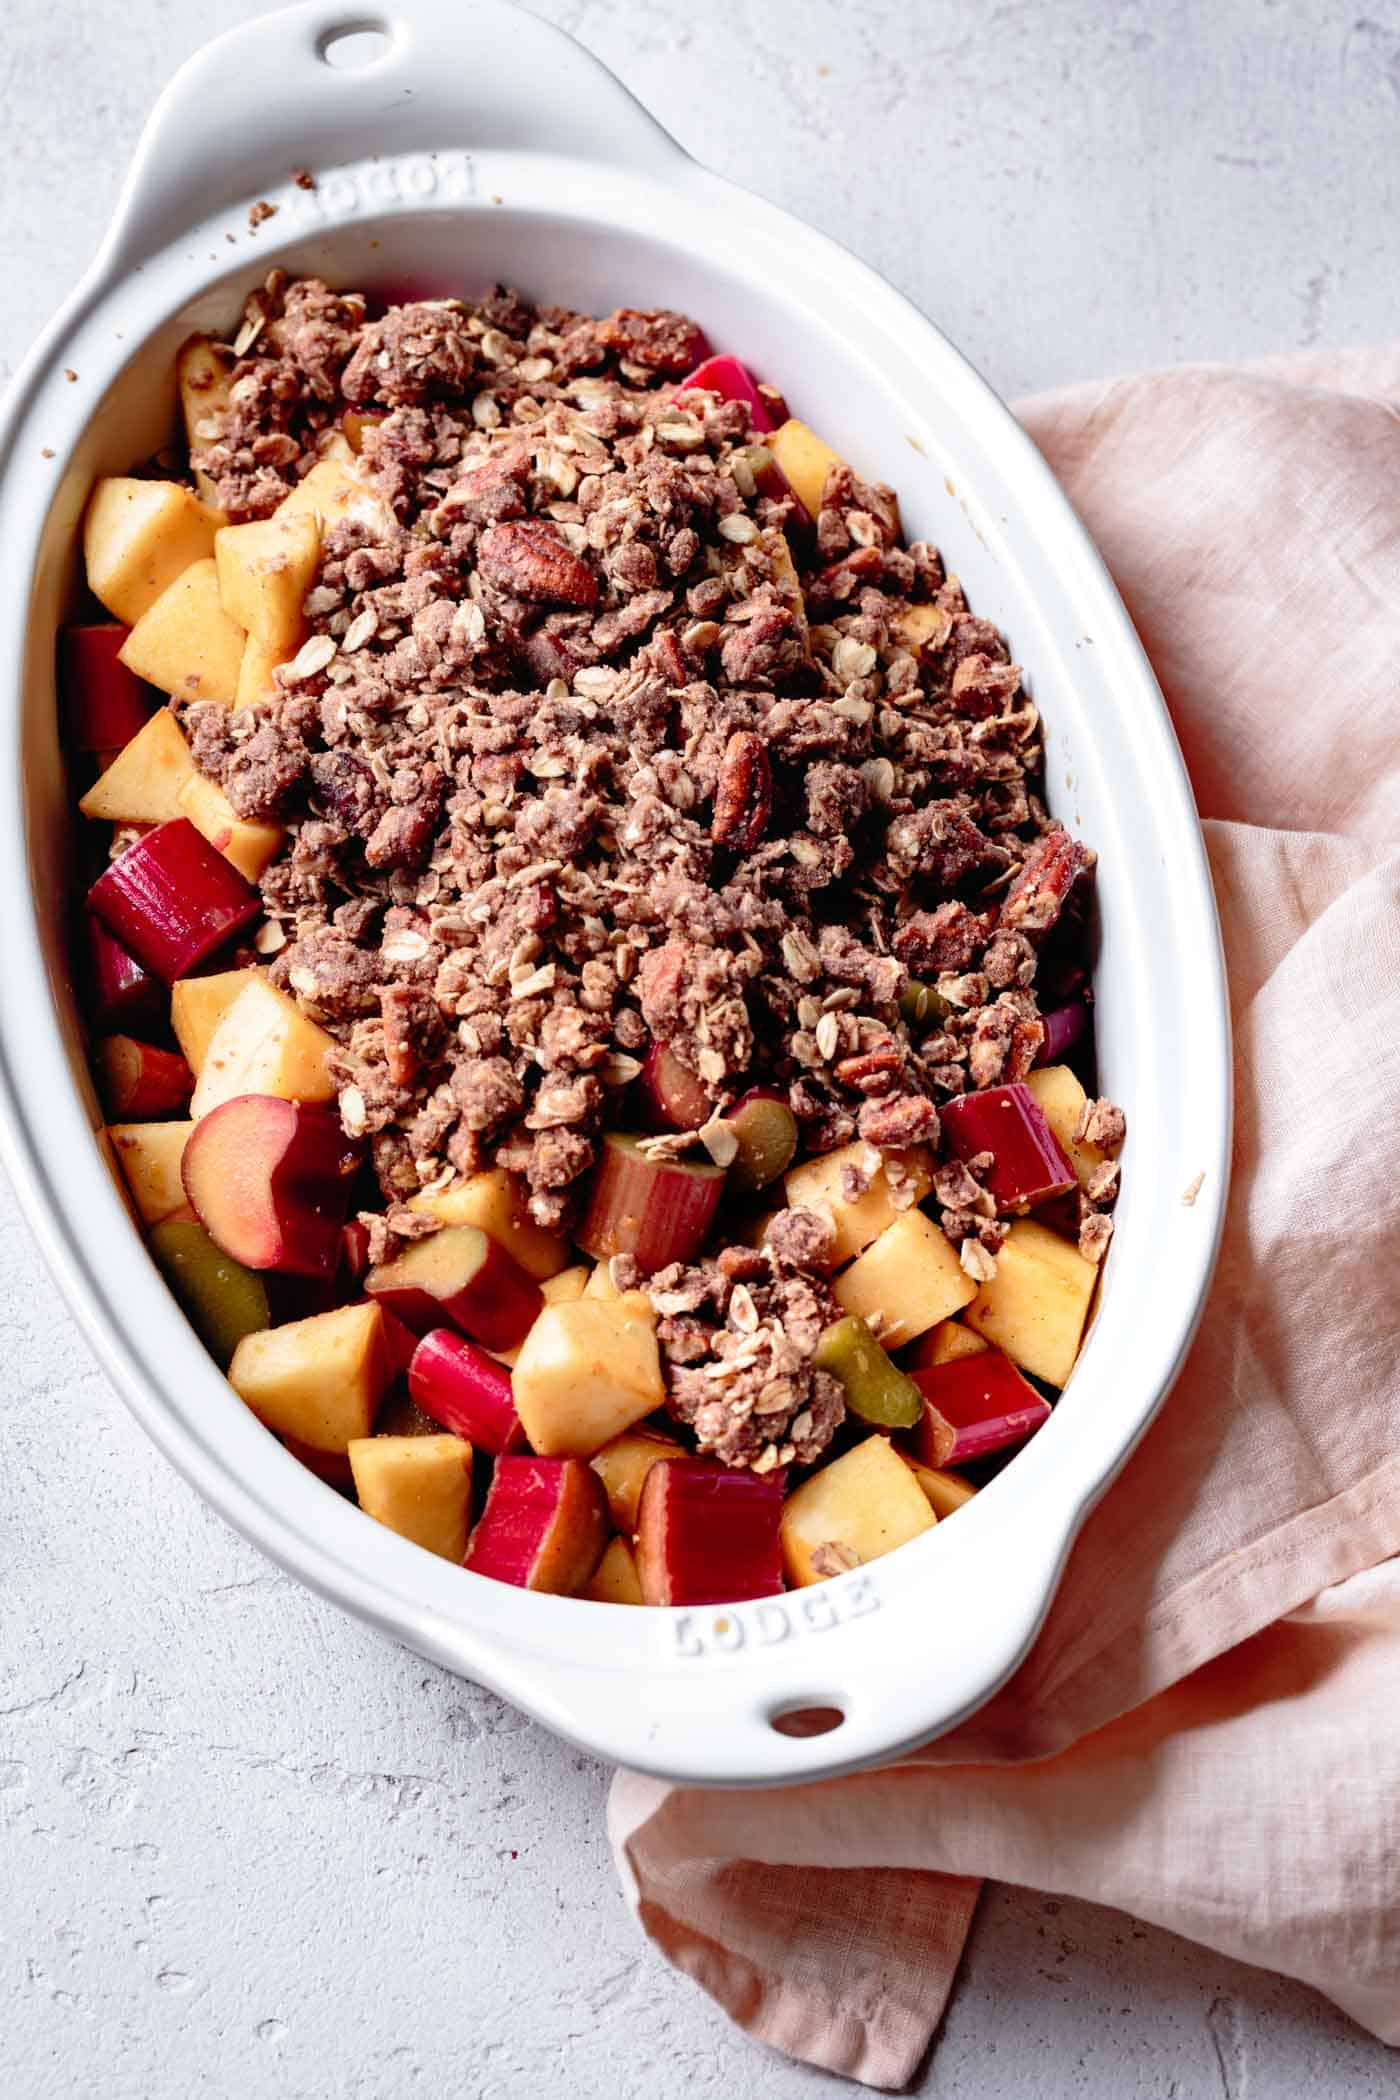 unbaked apple rhubarb crisp with oatmeal in a baking dish